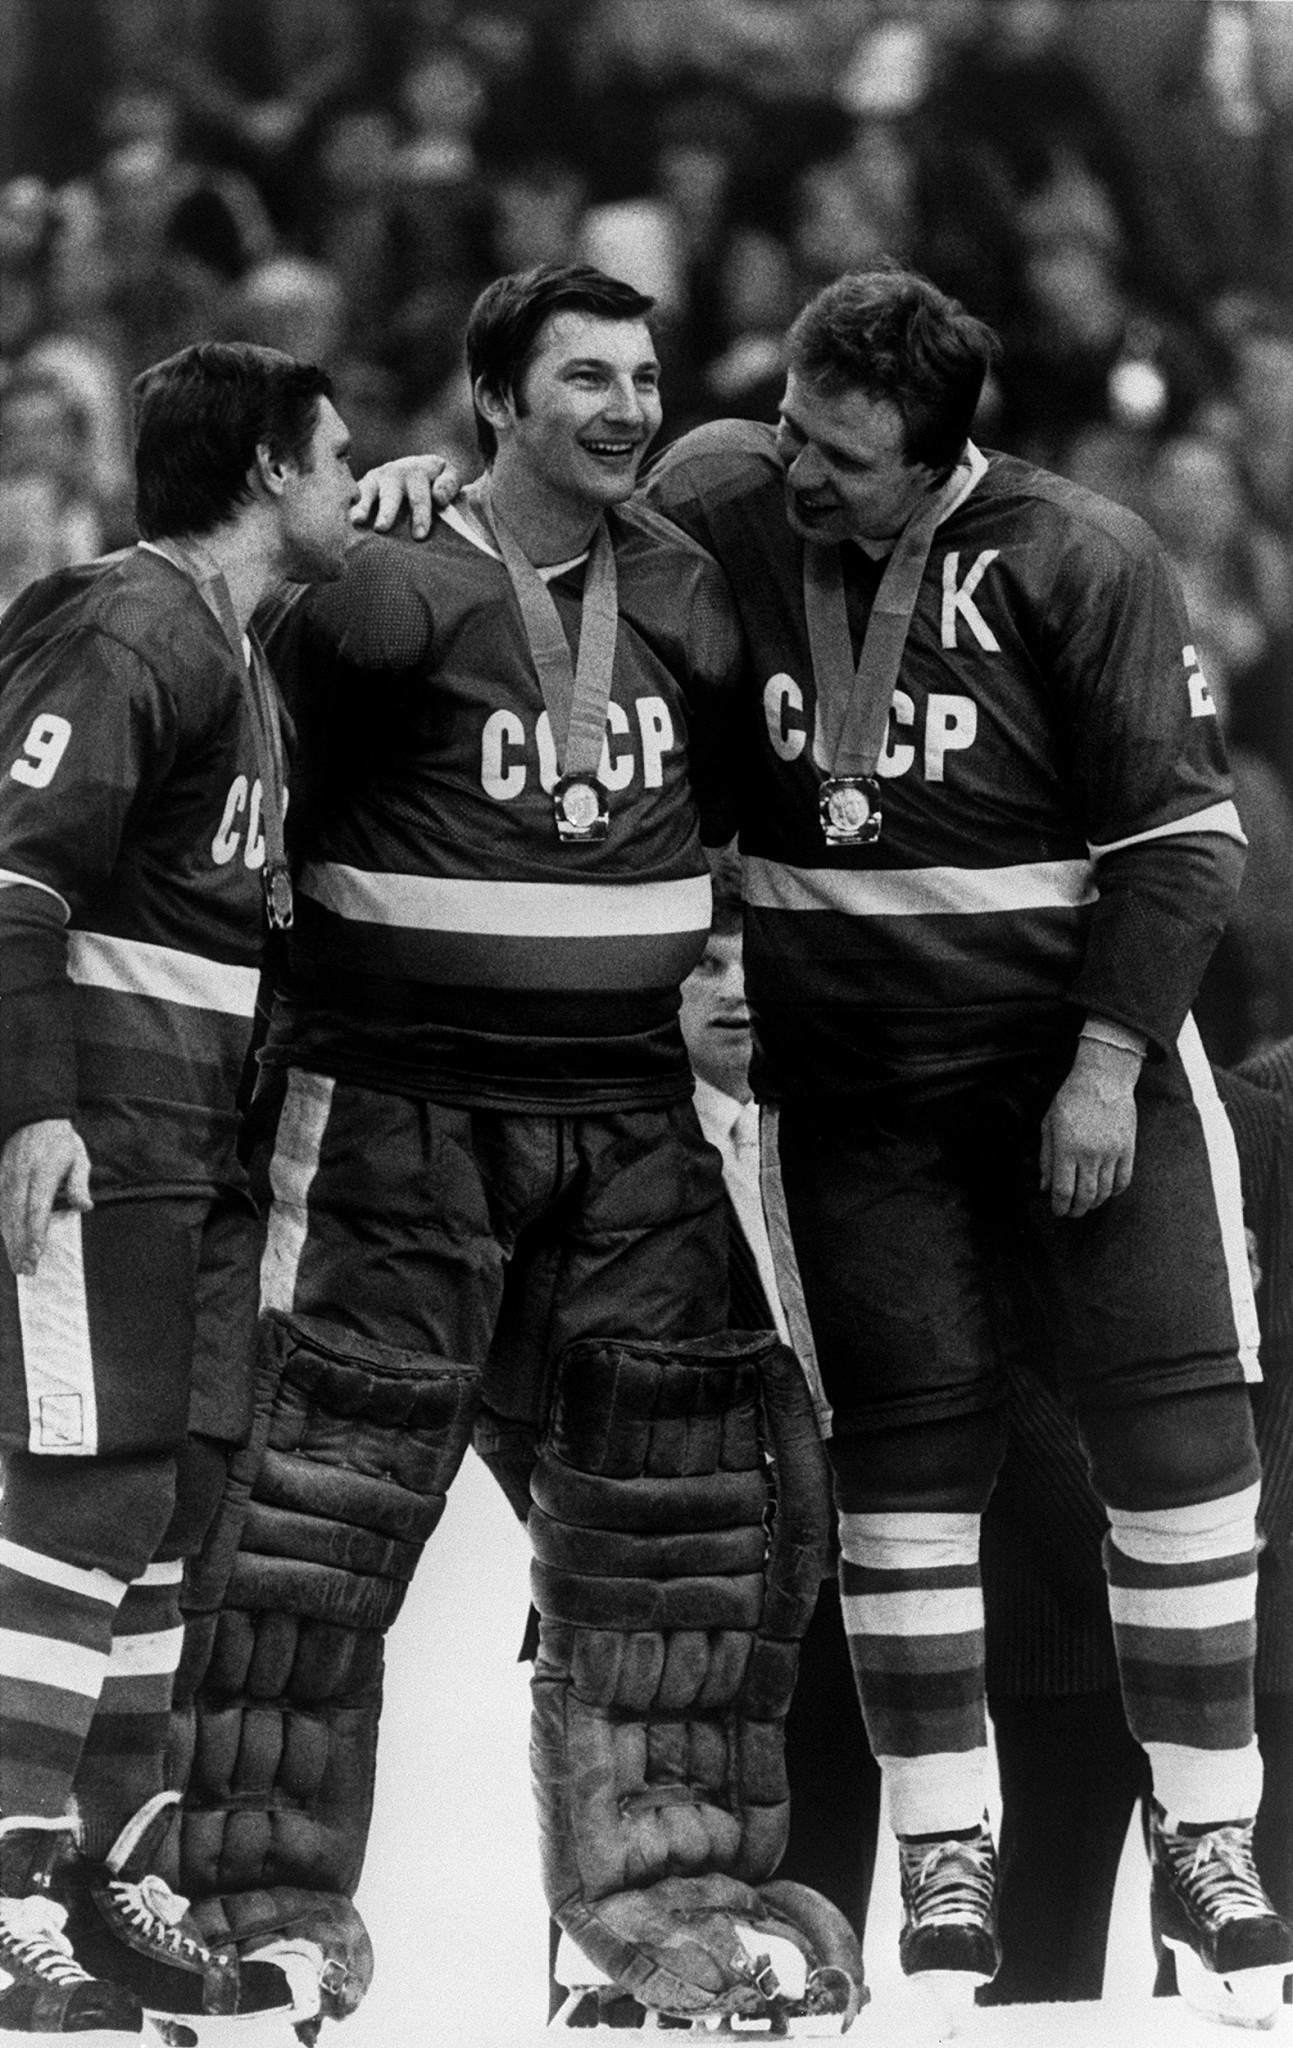 Four years after being substituted during the crucial match against the US, Vladislav Tretiak, centre, returned to his goaltending duties as the Soviet Union won their sixth Olympic ice hockey title at the Sarajevo 1984 Winter Games ©Getty Images